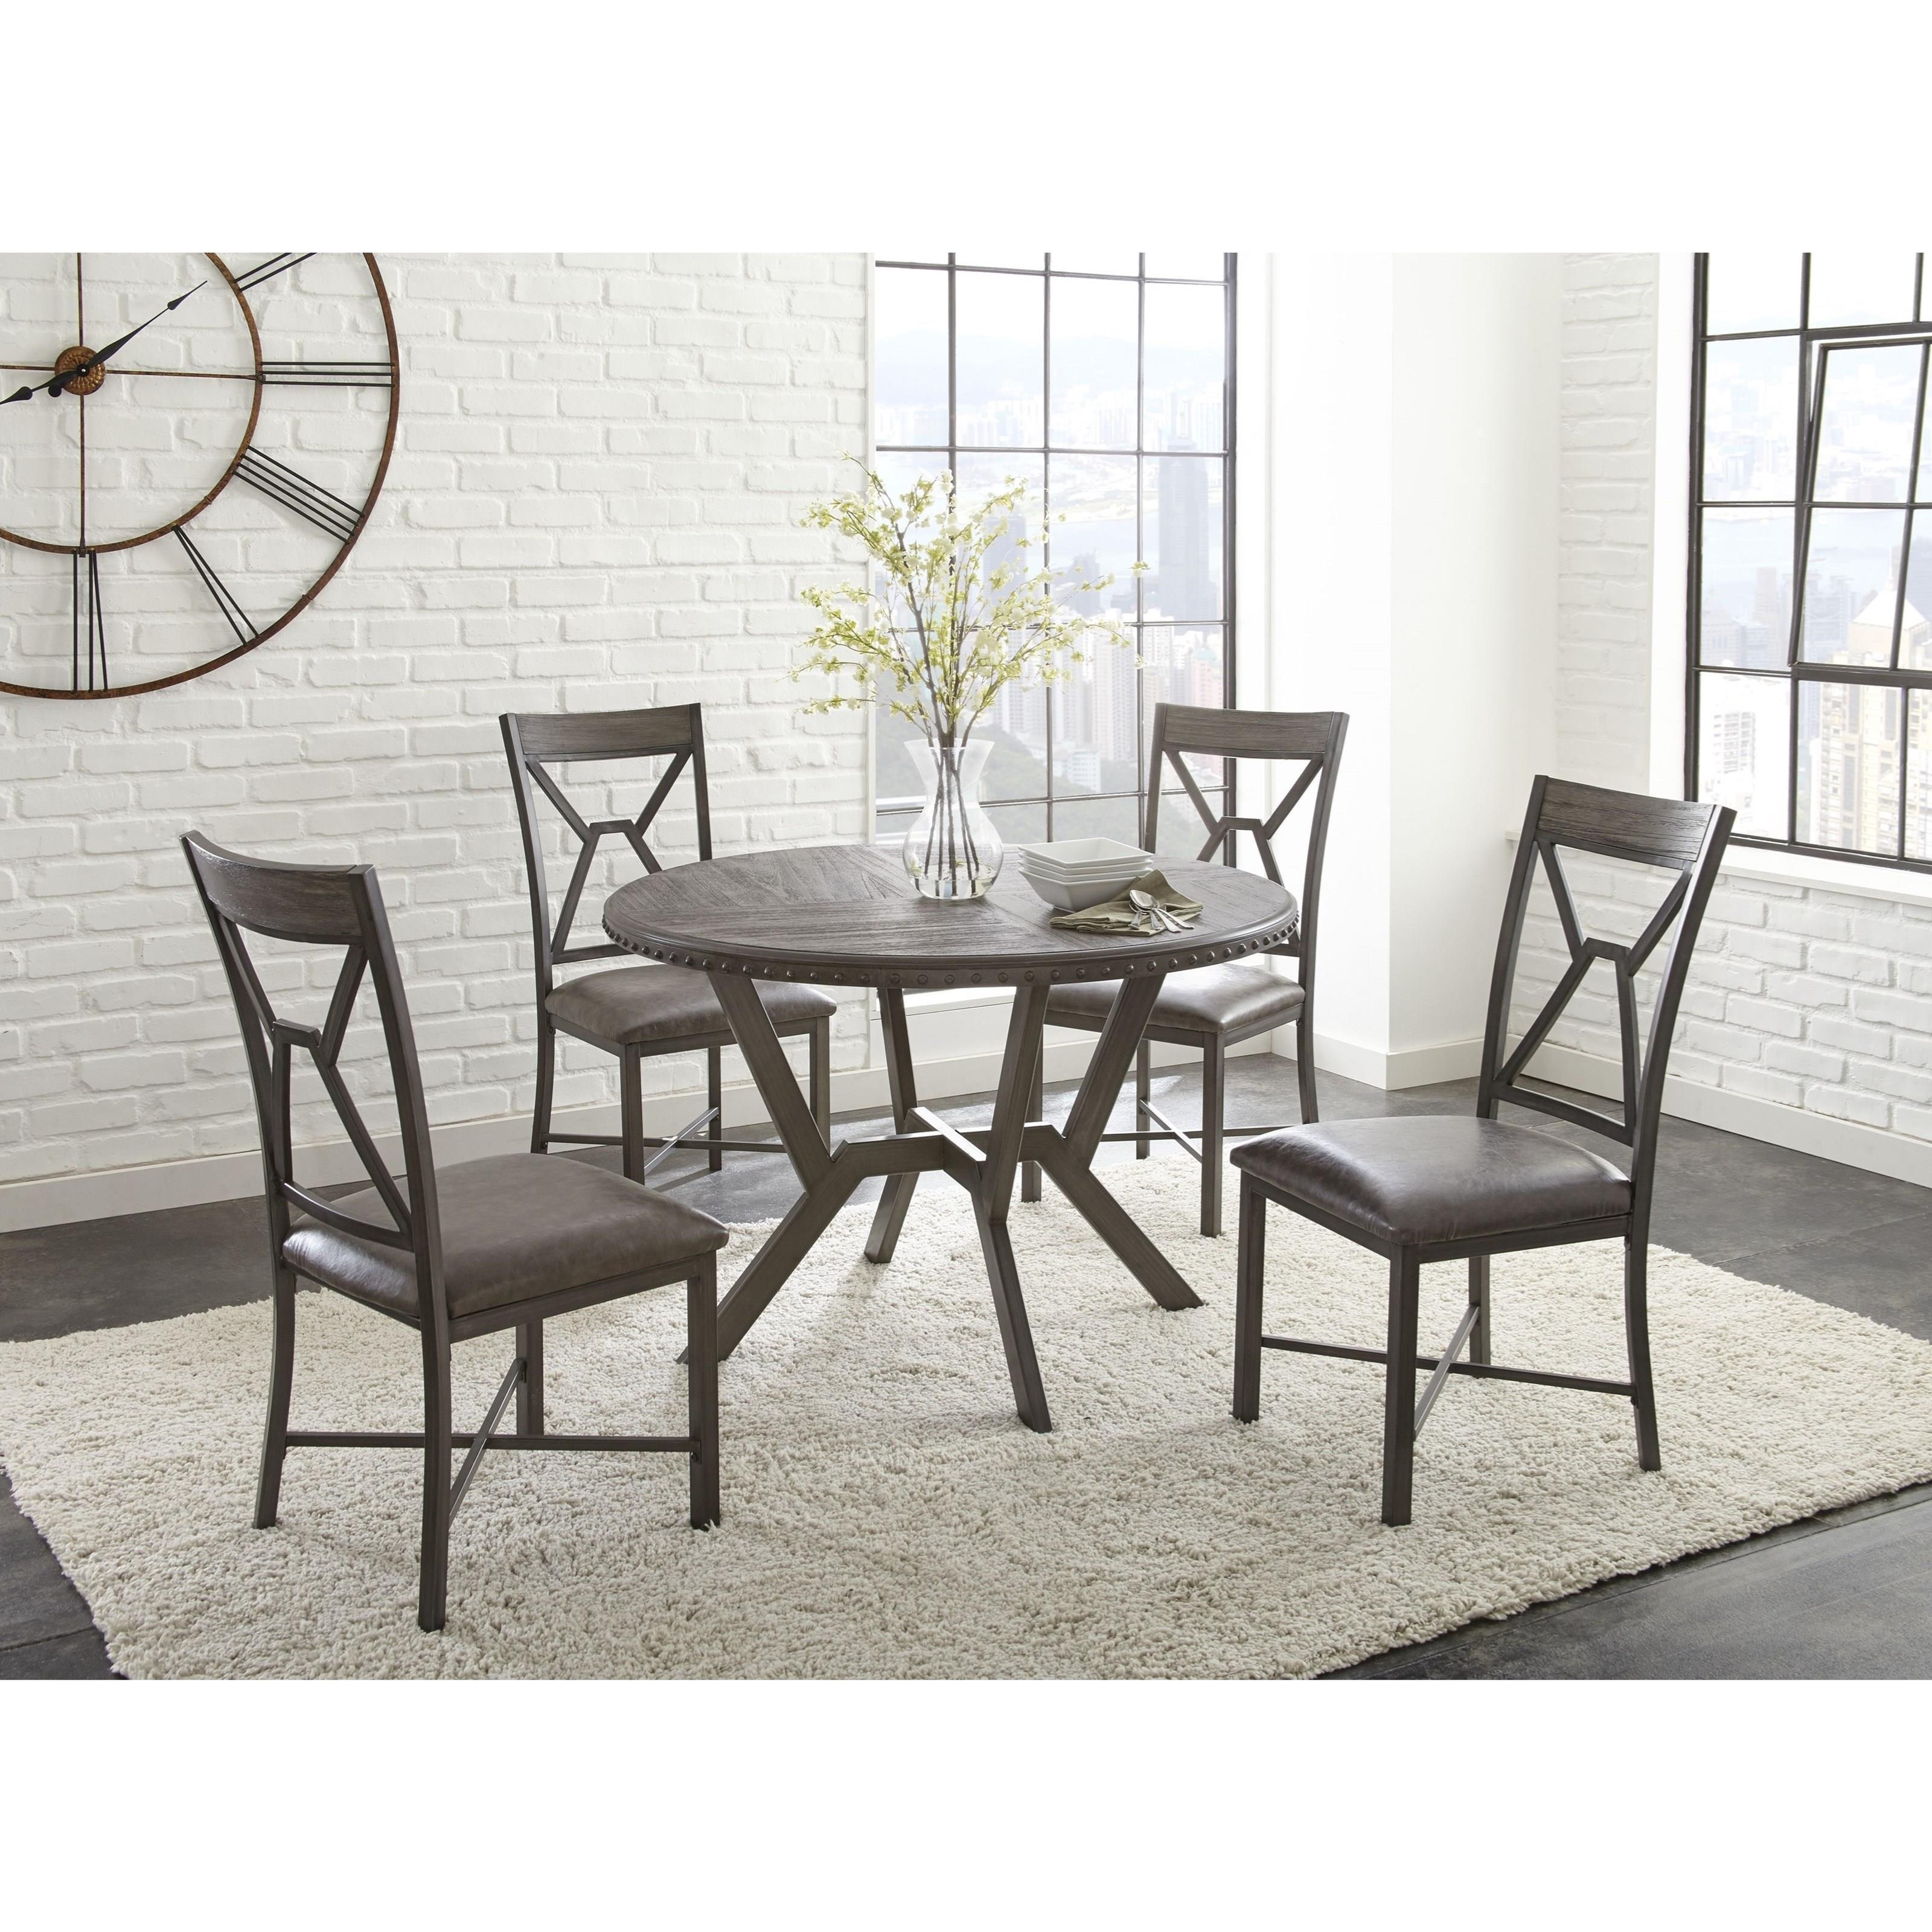 Steve Silver Alamo Round Dining Table With Metal Base